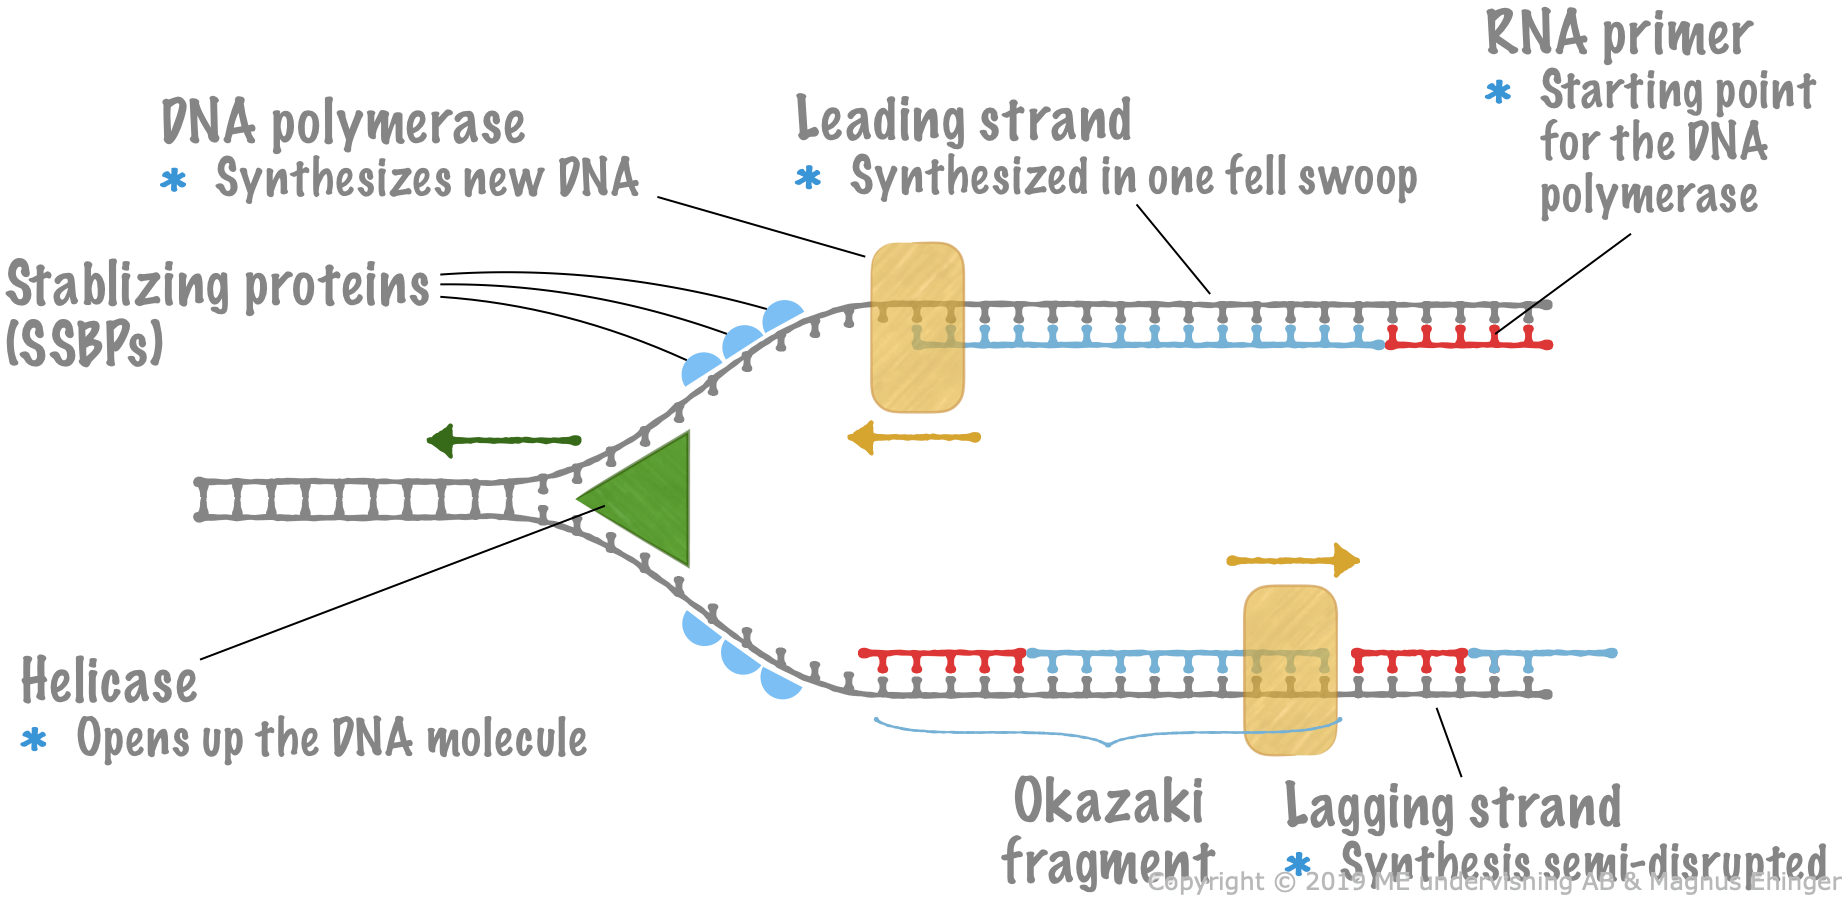 When DNA is replicated, a structure called a replication fork is formed.